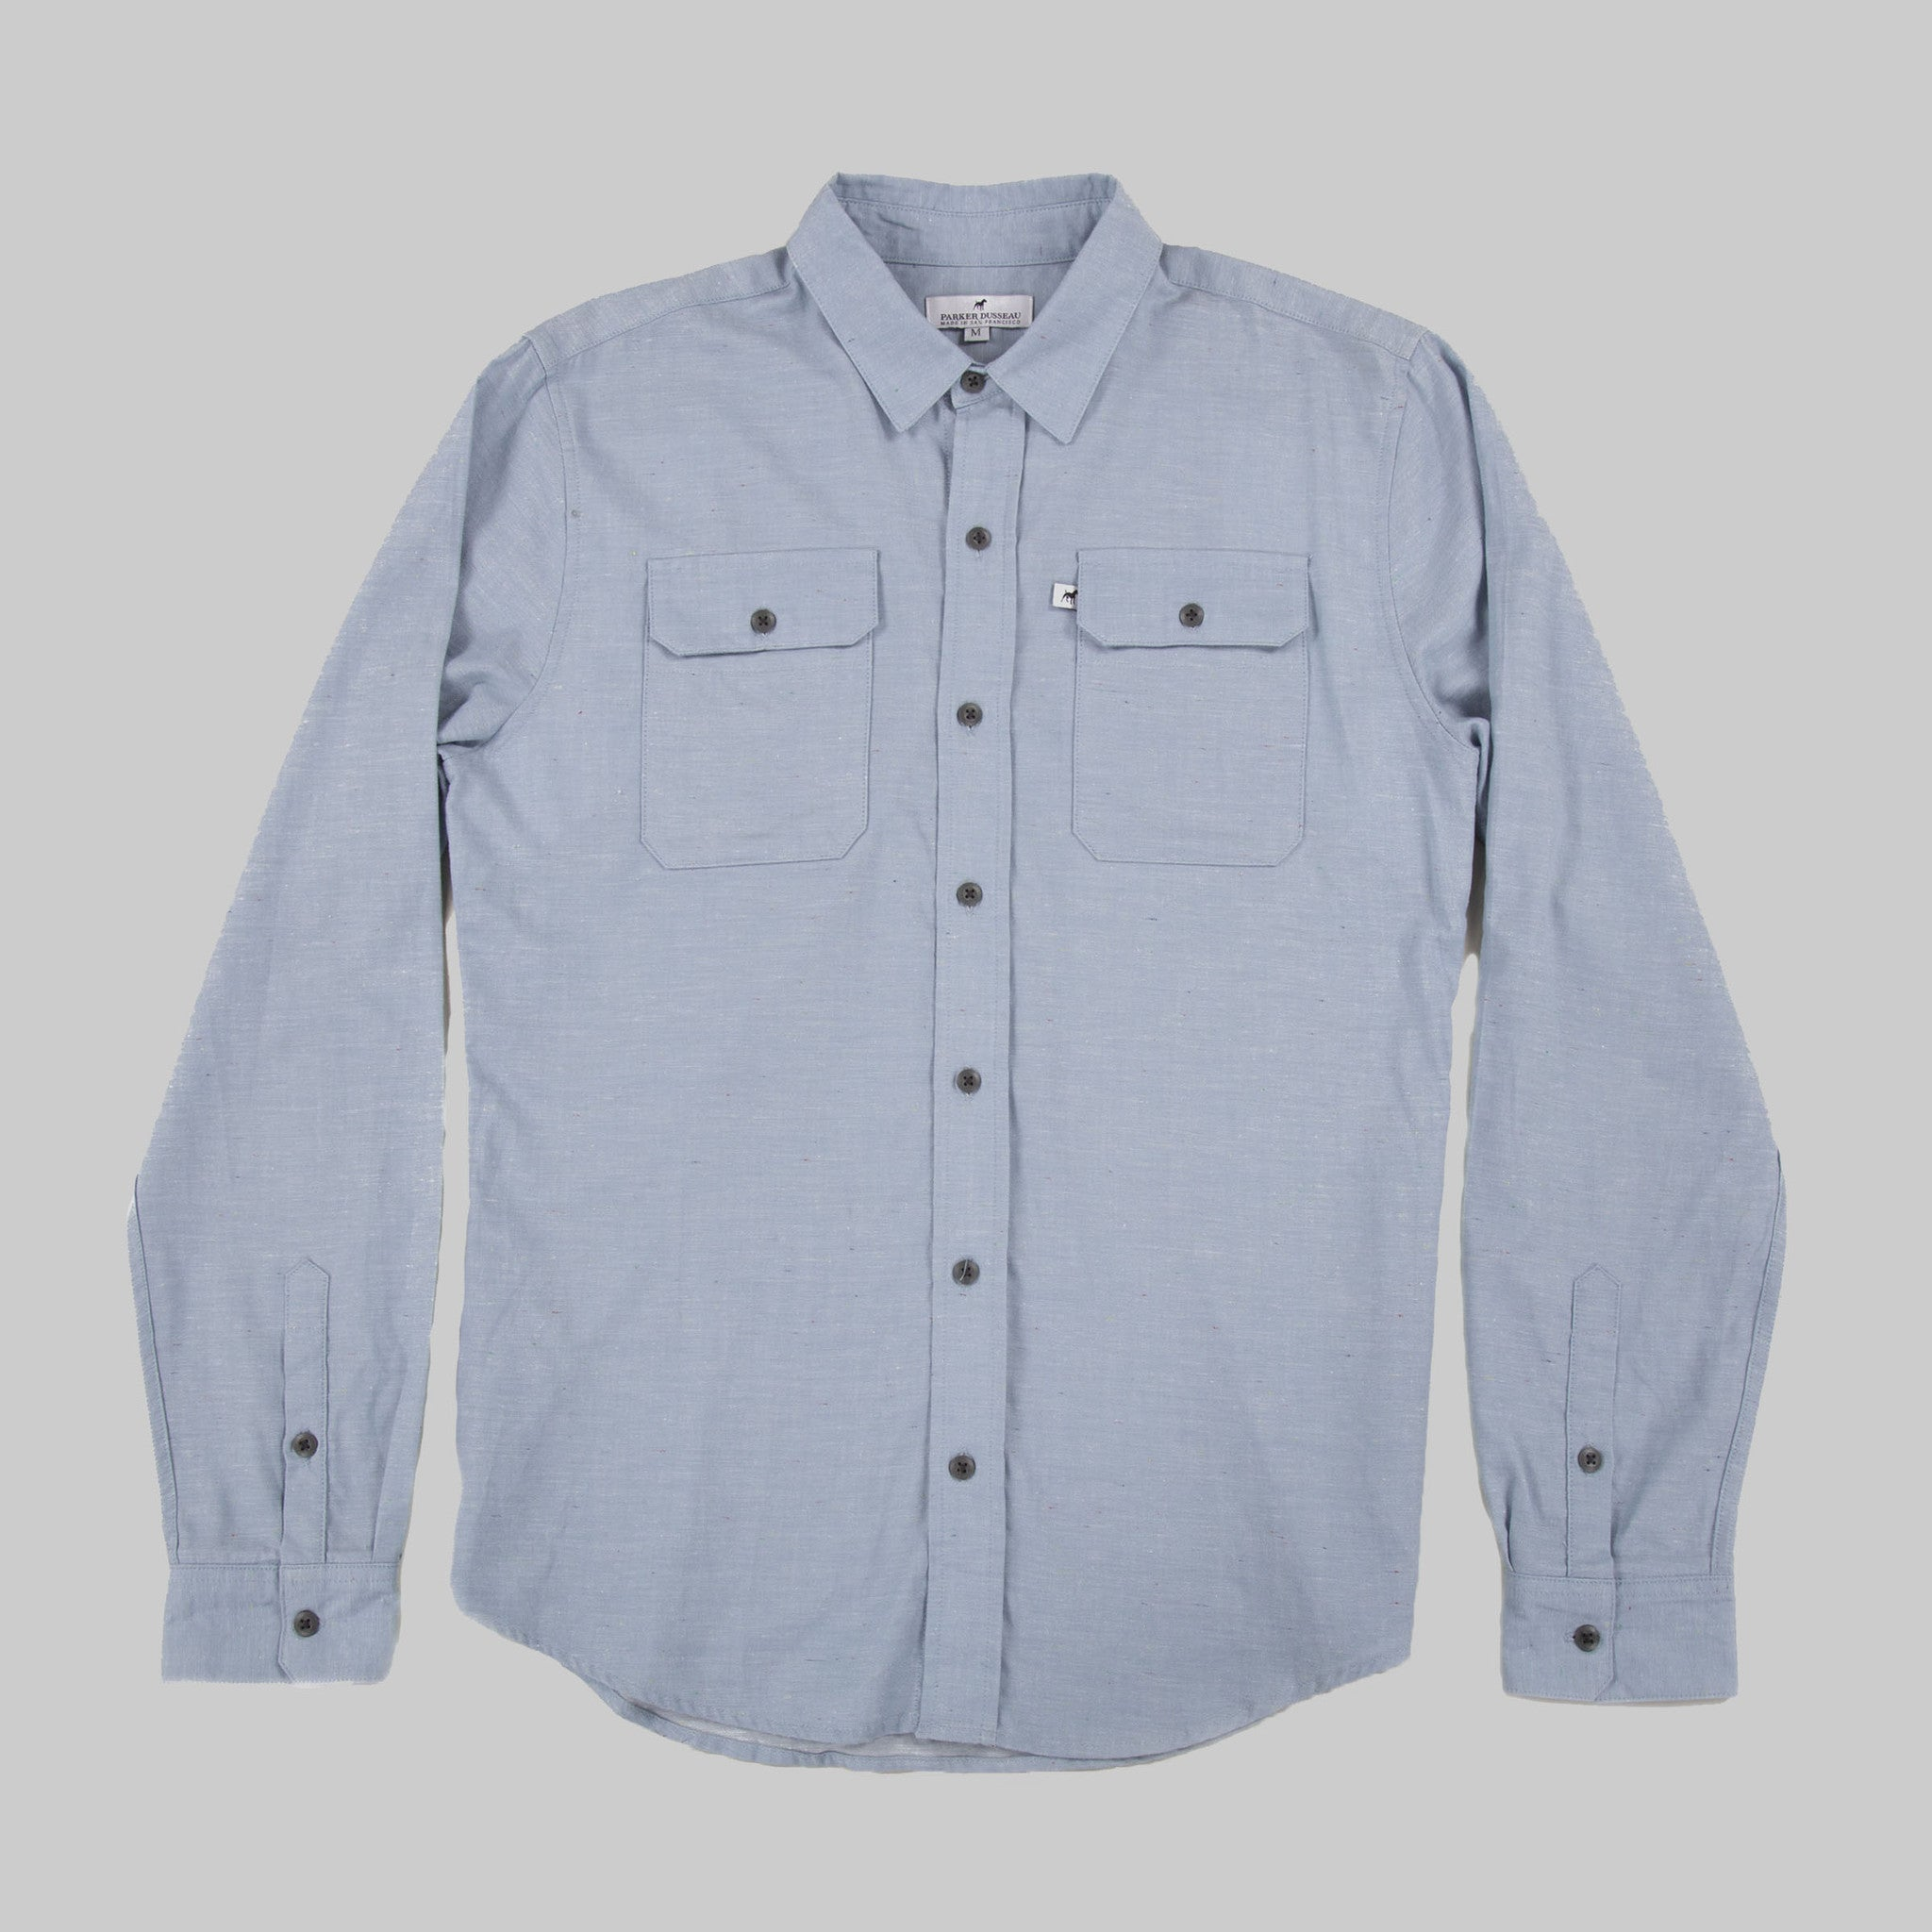 Lightweight Cotton Classic Work Shirt - Sky Blue Fleck Work Shirt- Parker Dusseau : Functional Menswear Essentials for the Always Ready Lifestyle. Based in San Francisco, California